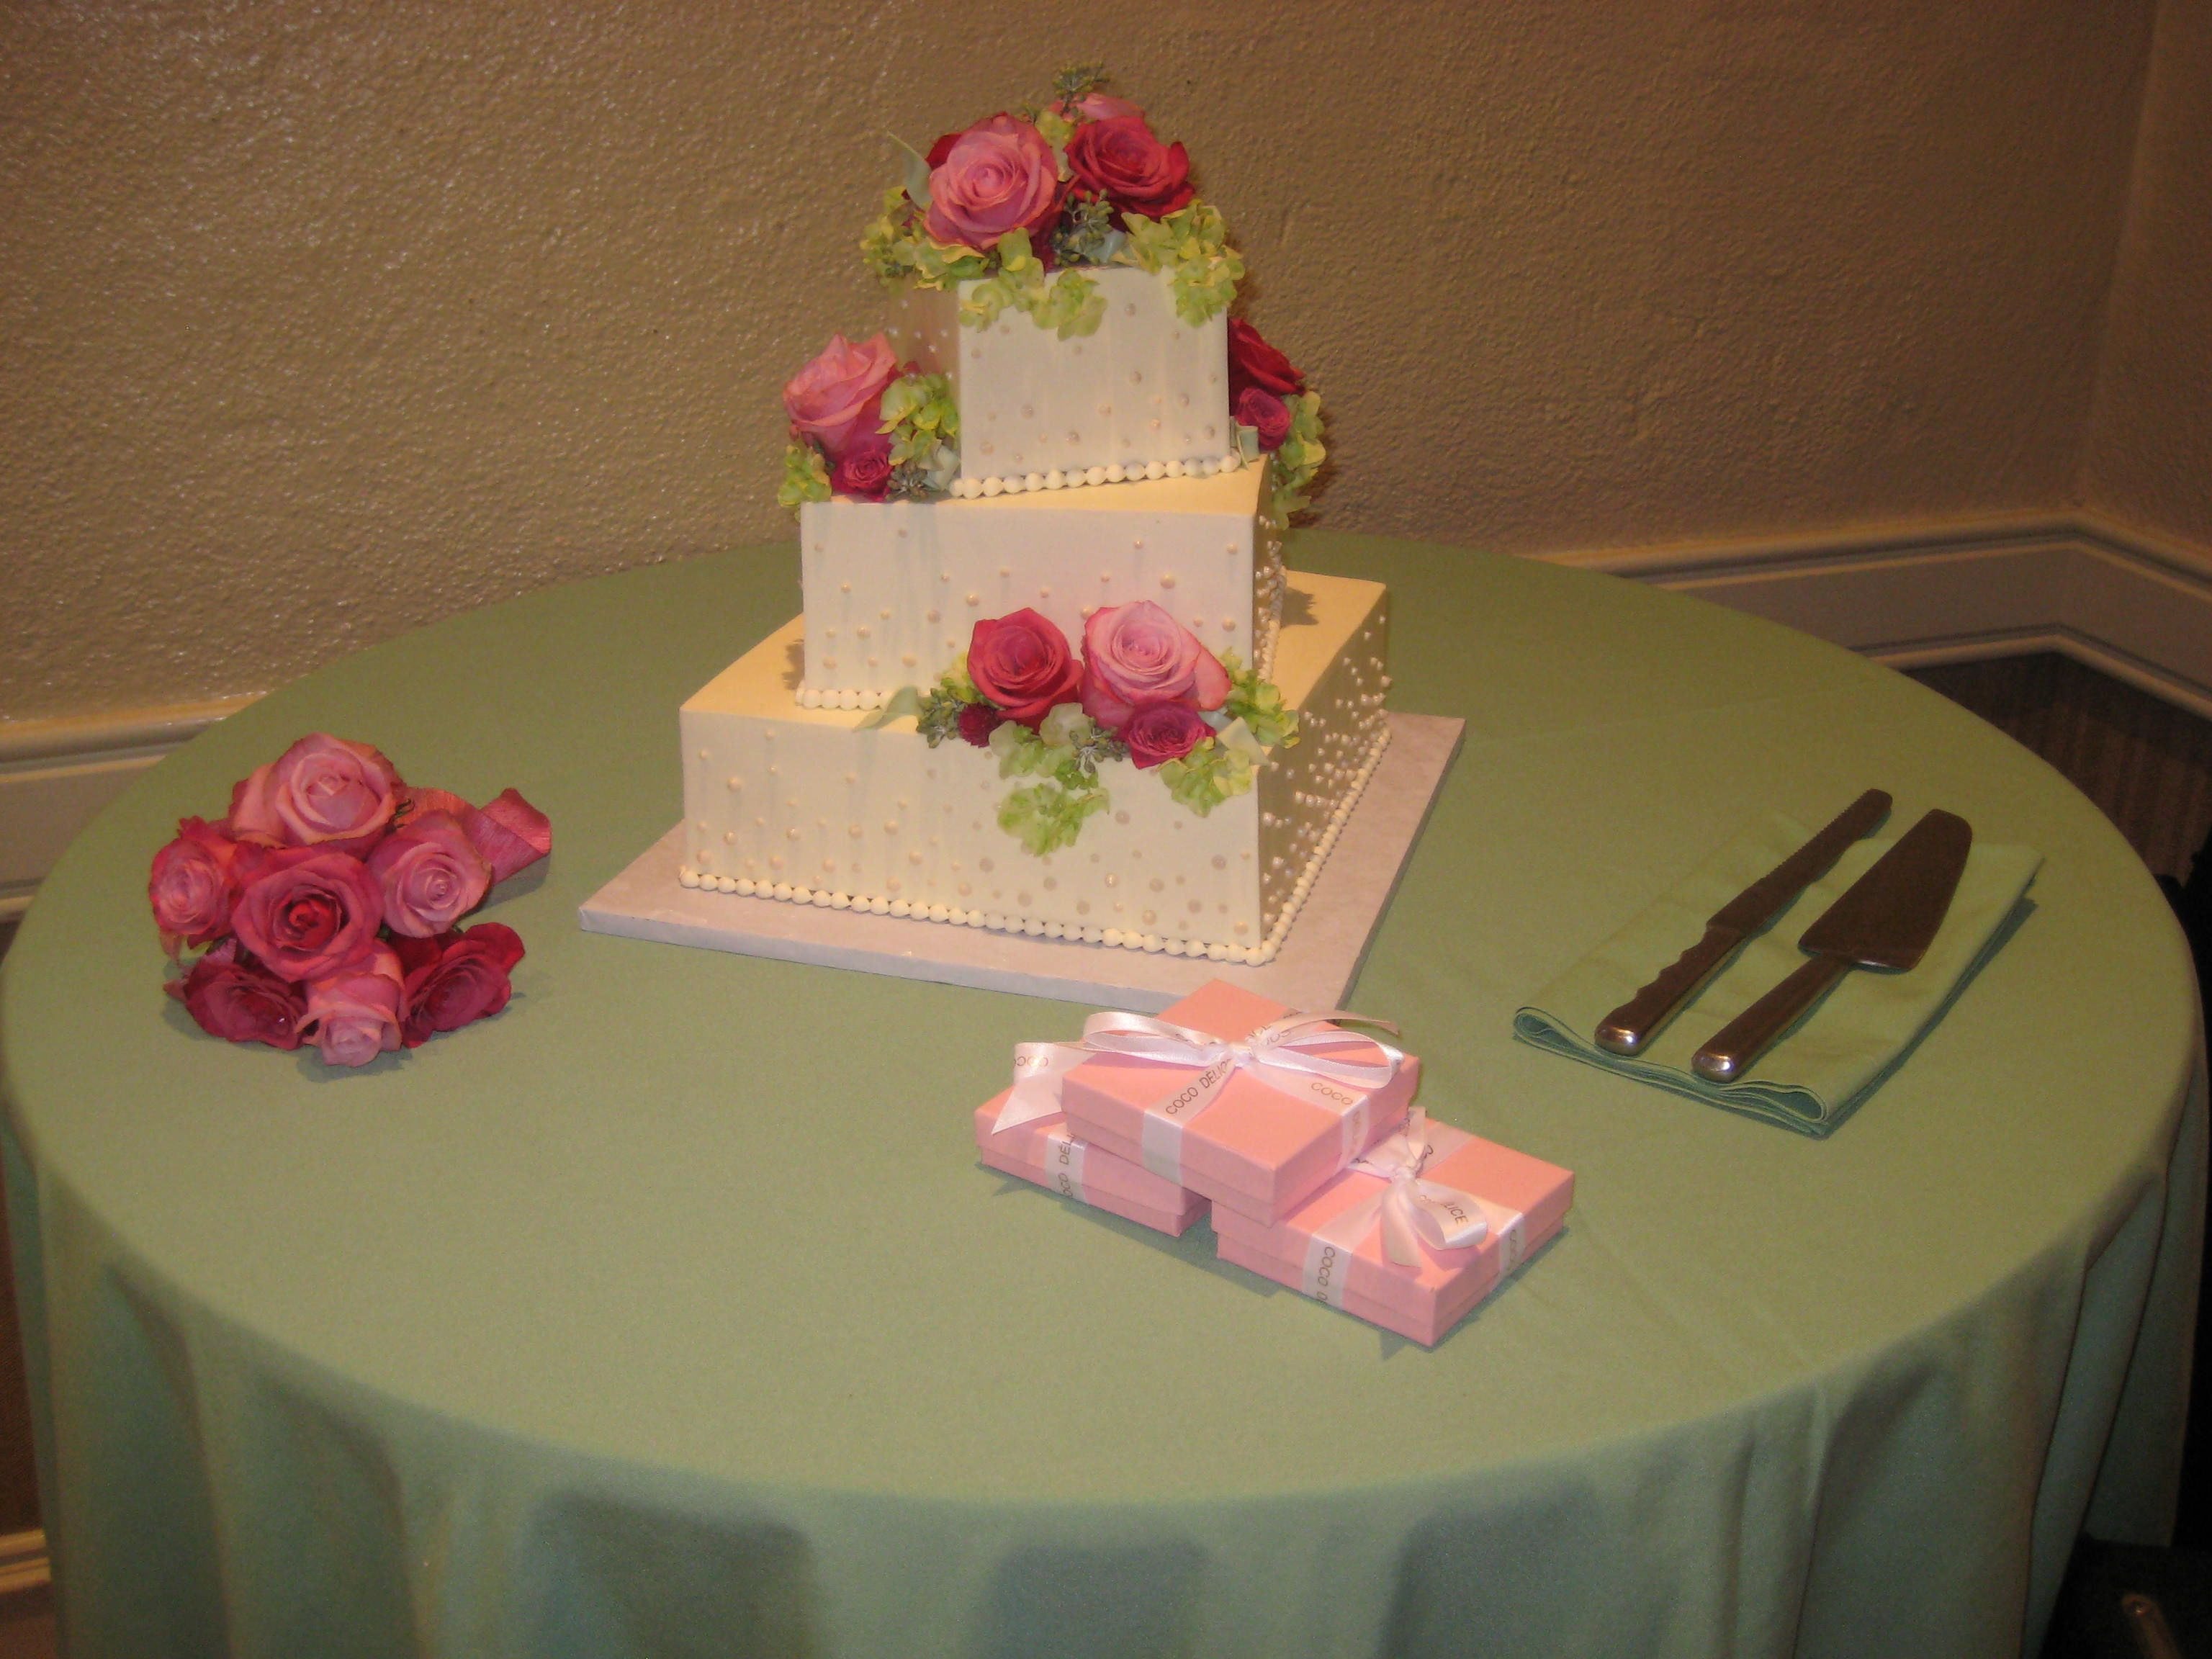 Cake table with celadon napkins and pink flowers wedding styles